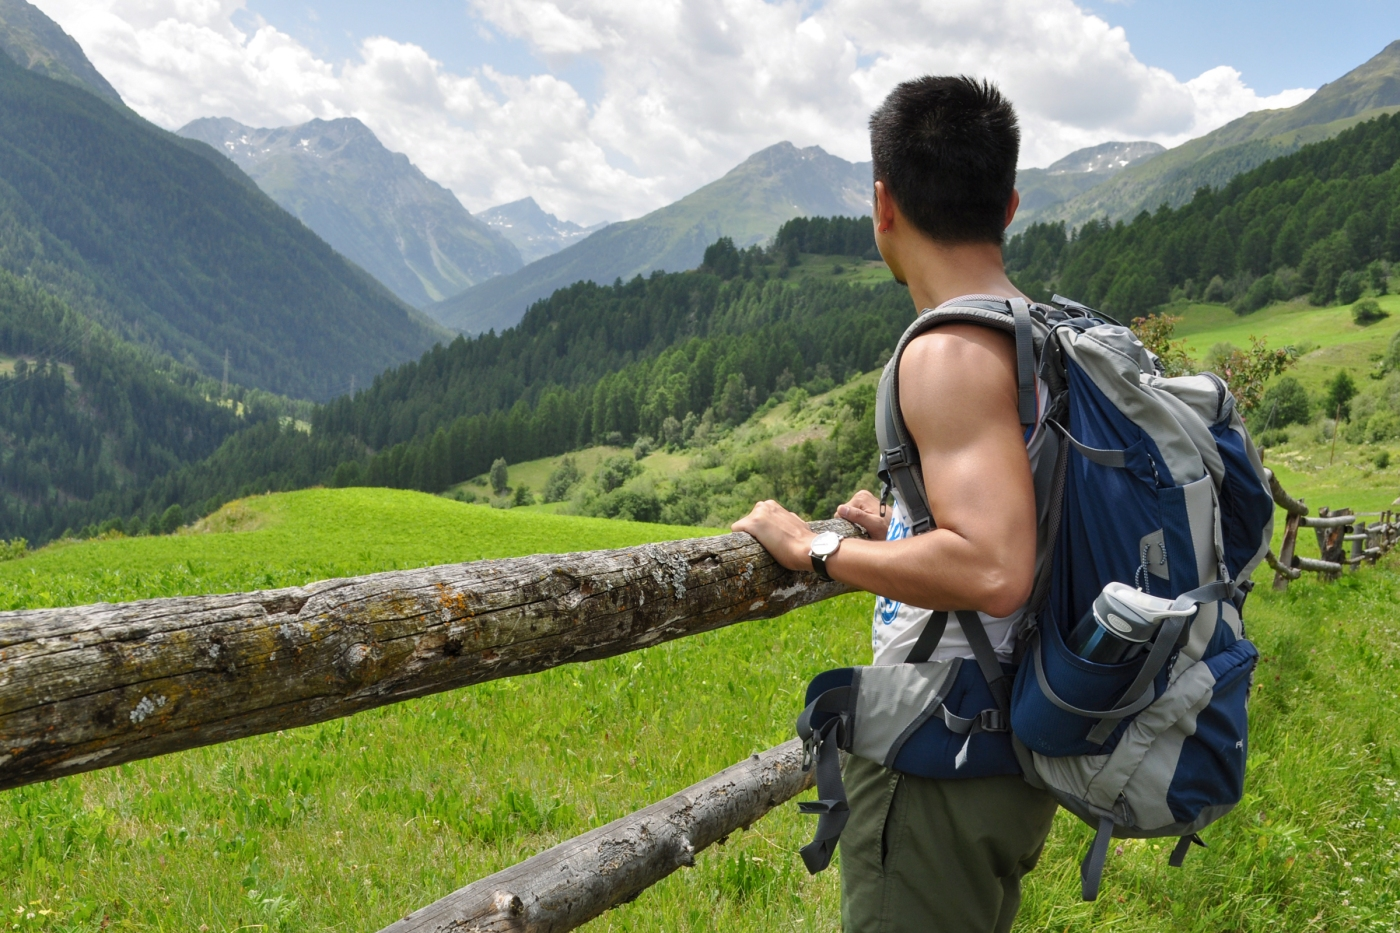 Man with backpack admiring mountain scenery